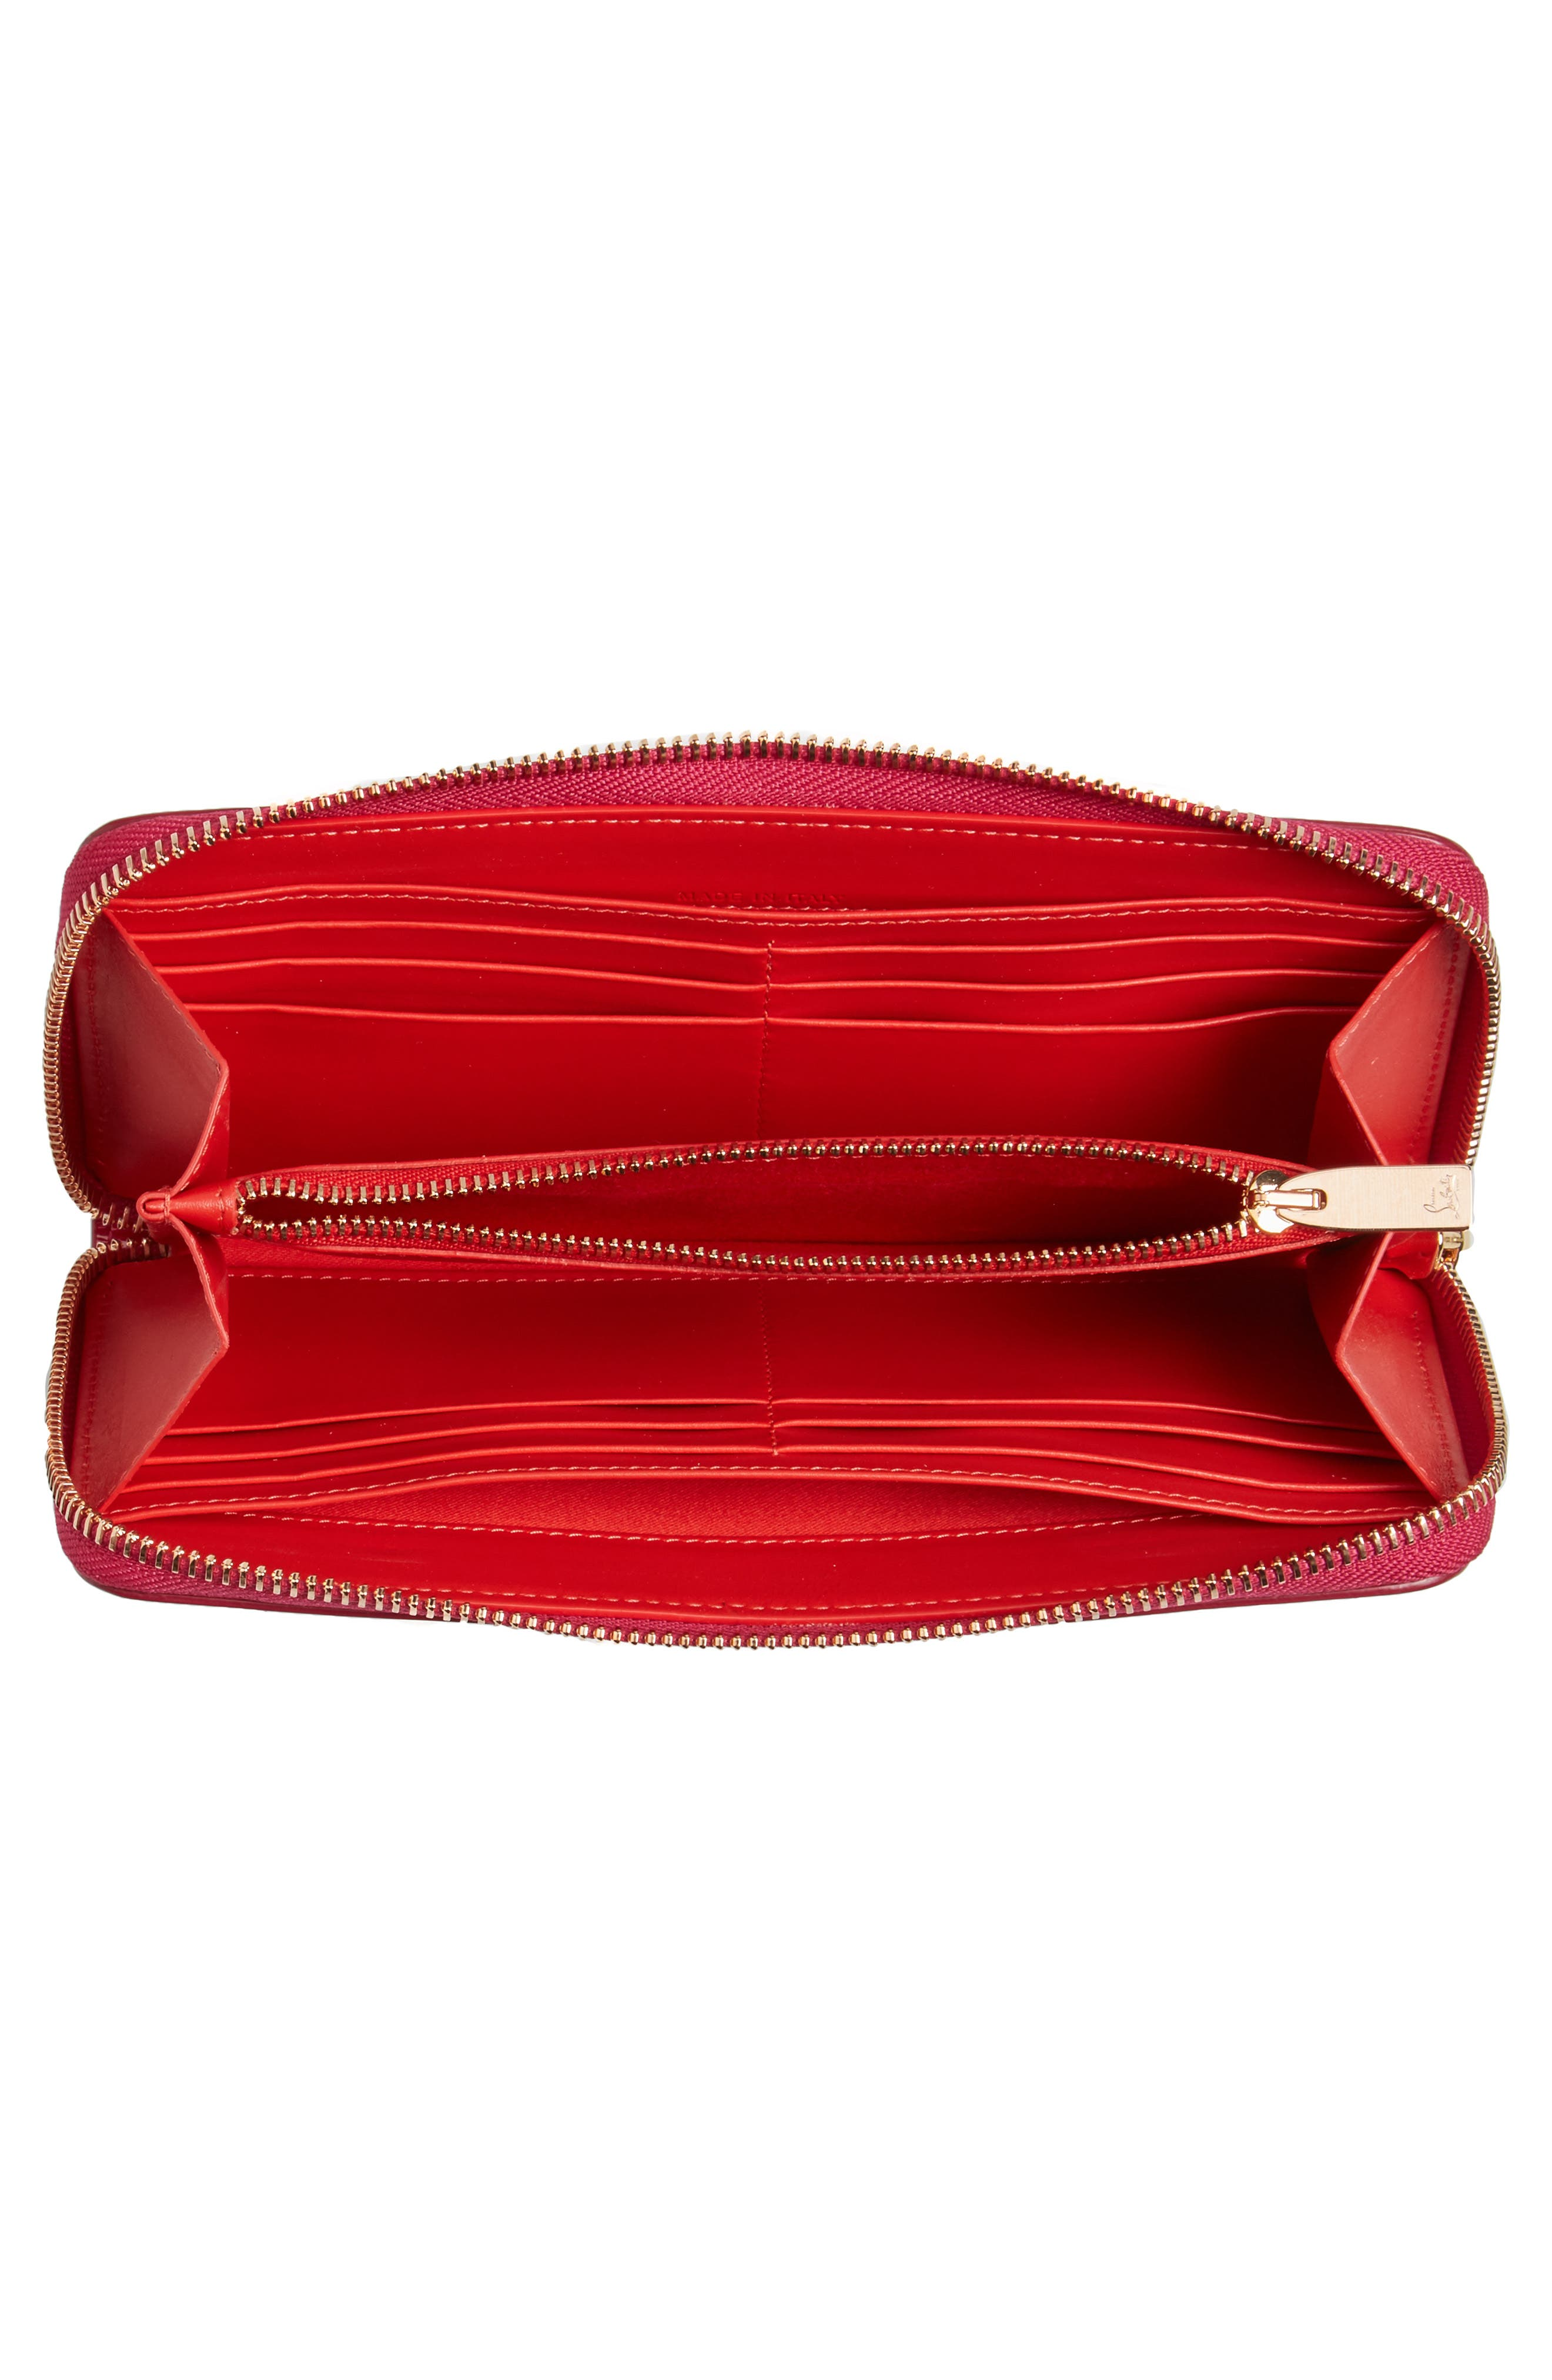 Alternate Image 2  - Christian Louboutin Panettone Spiked Patent Leather Wallet